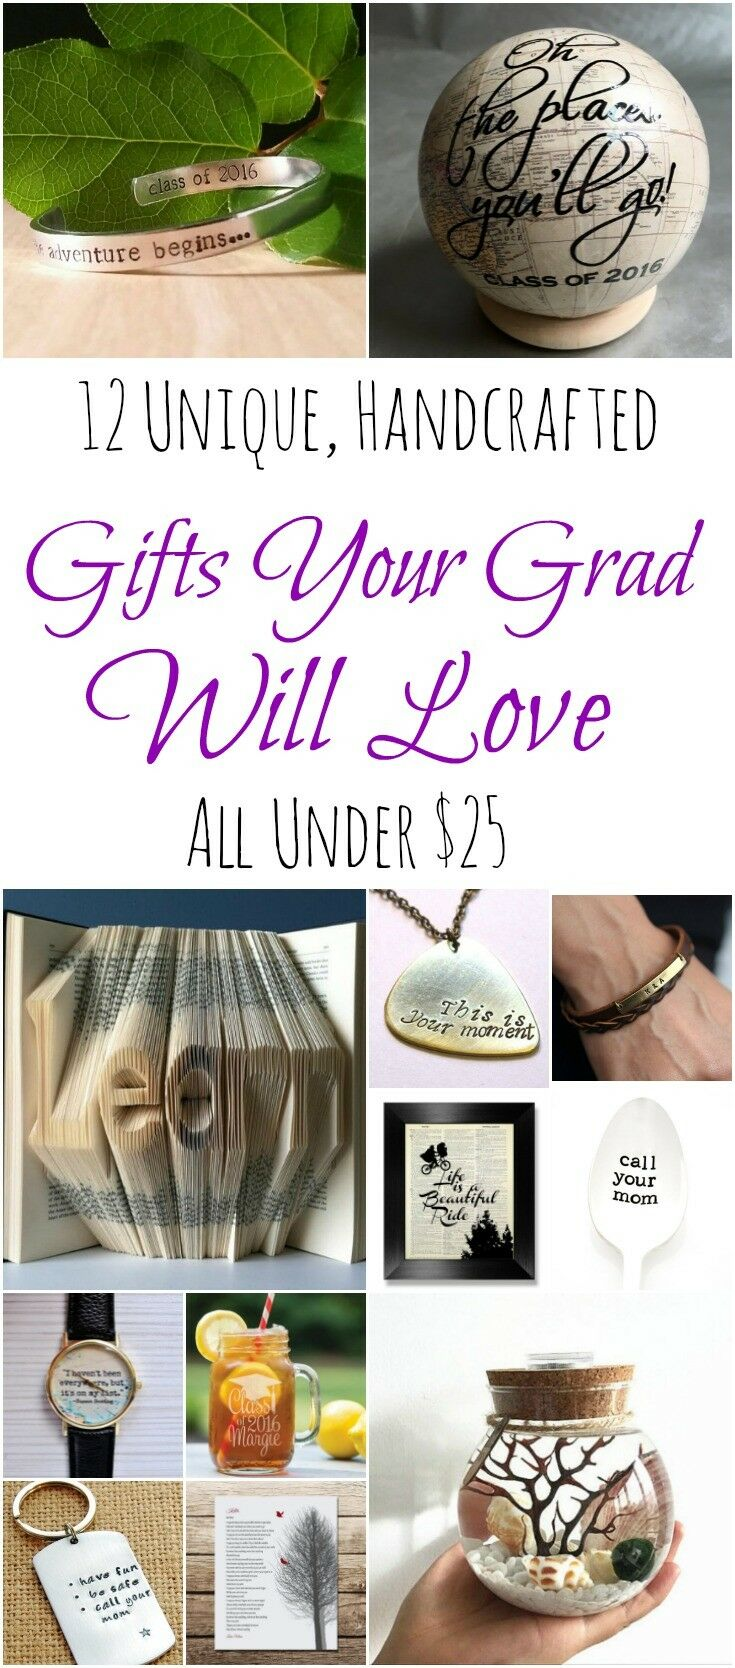 12 Unique, Handcrafted Gifts for Grads Under $25 | The Good Hearted Woman